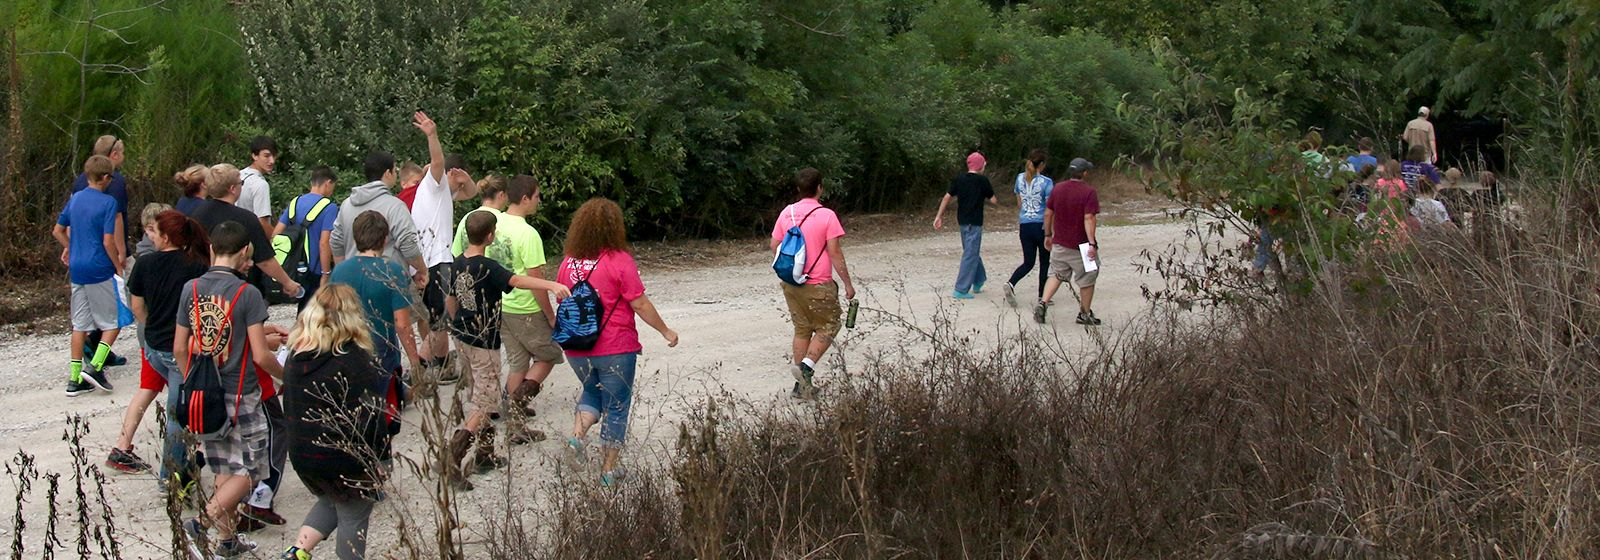 Slideshow: Students have fun learning about wetlands